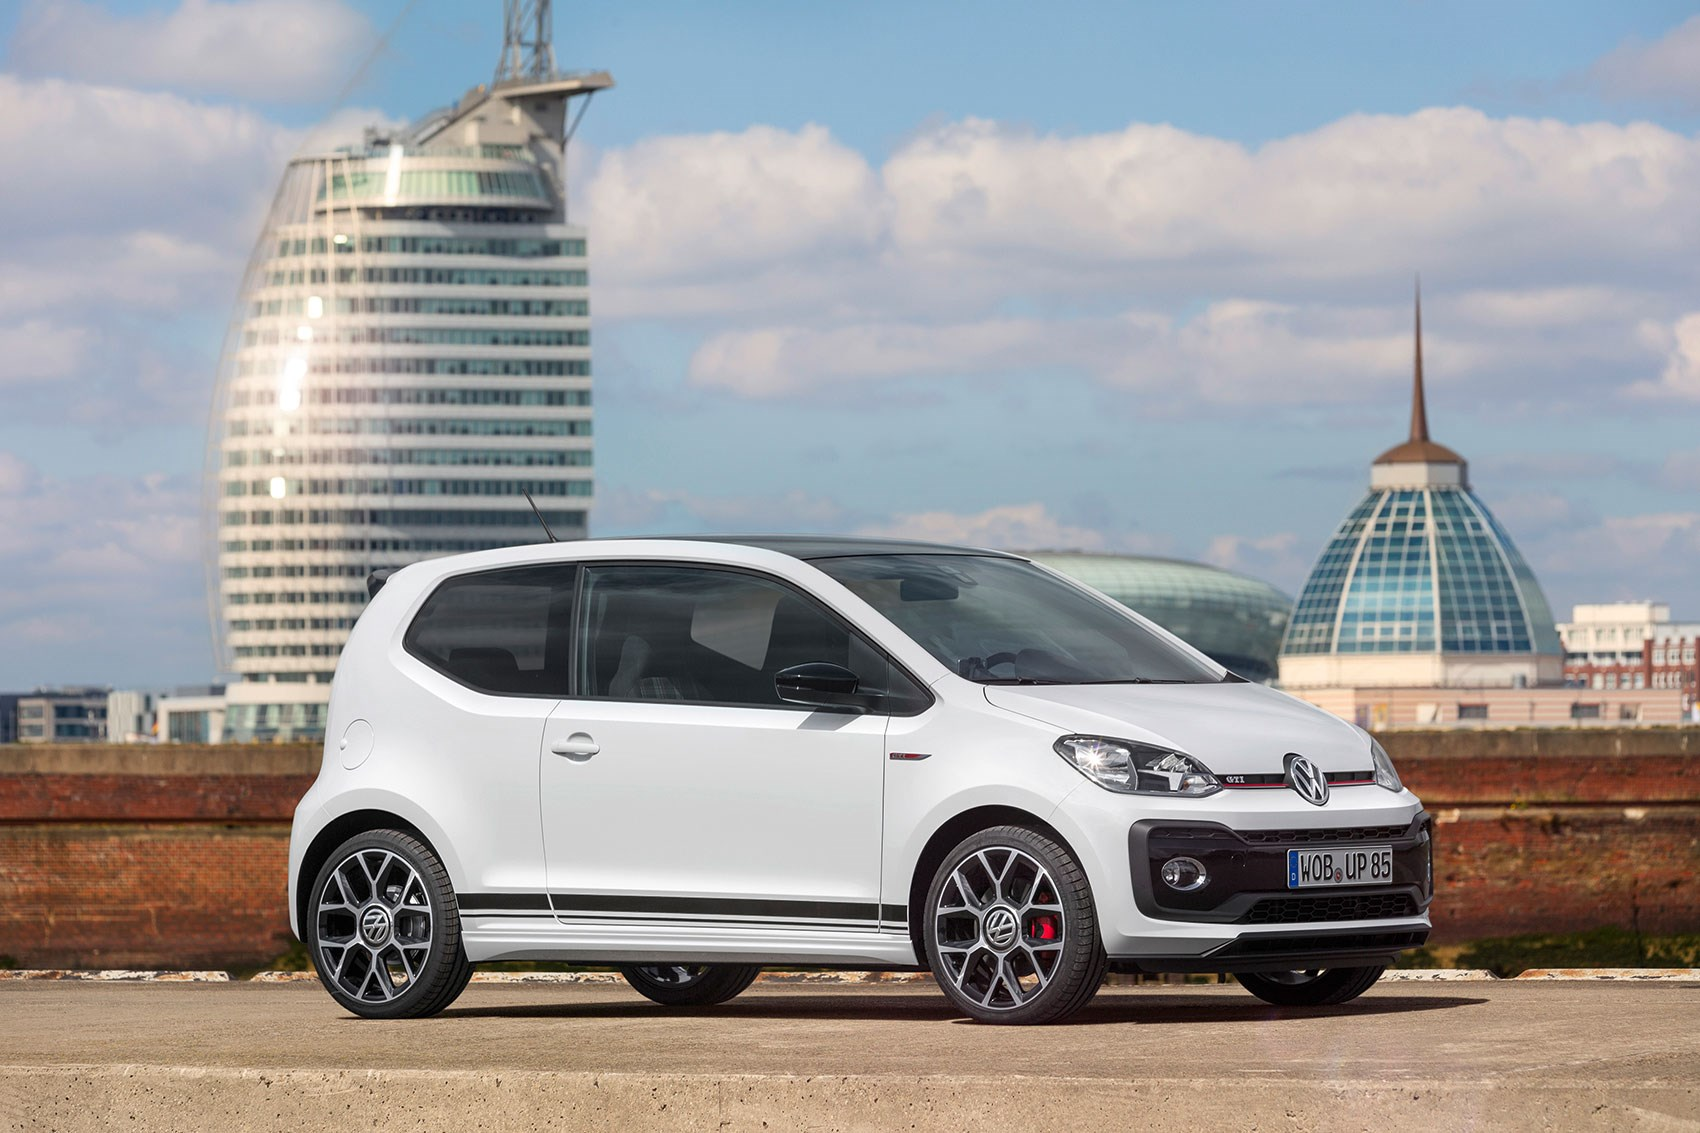 113bhp Turbo For New Volkswagen Up Gti Warm Hatch The 2017 Vw